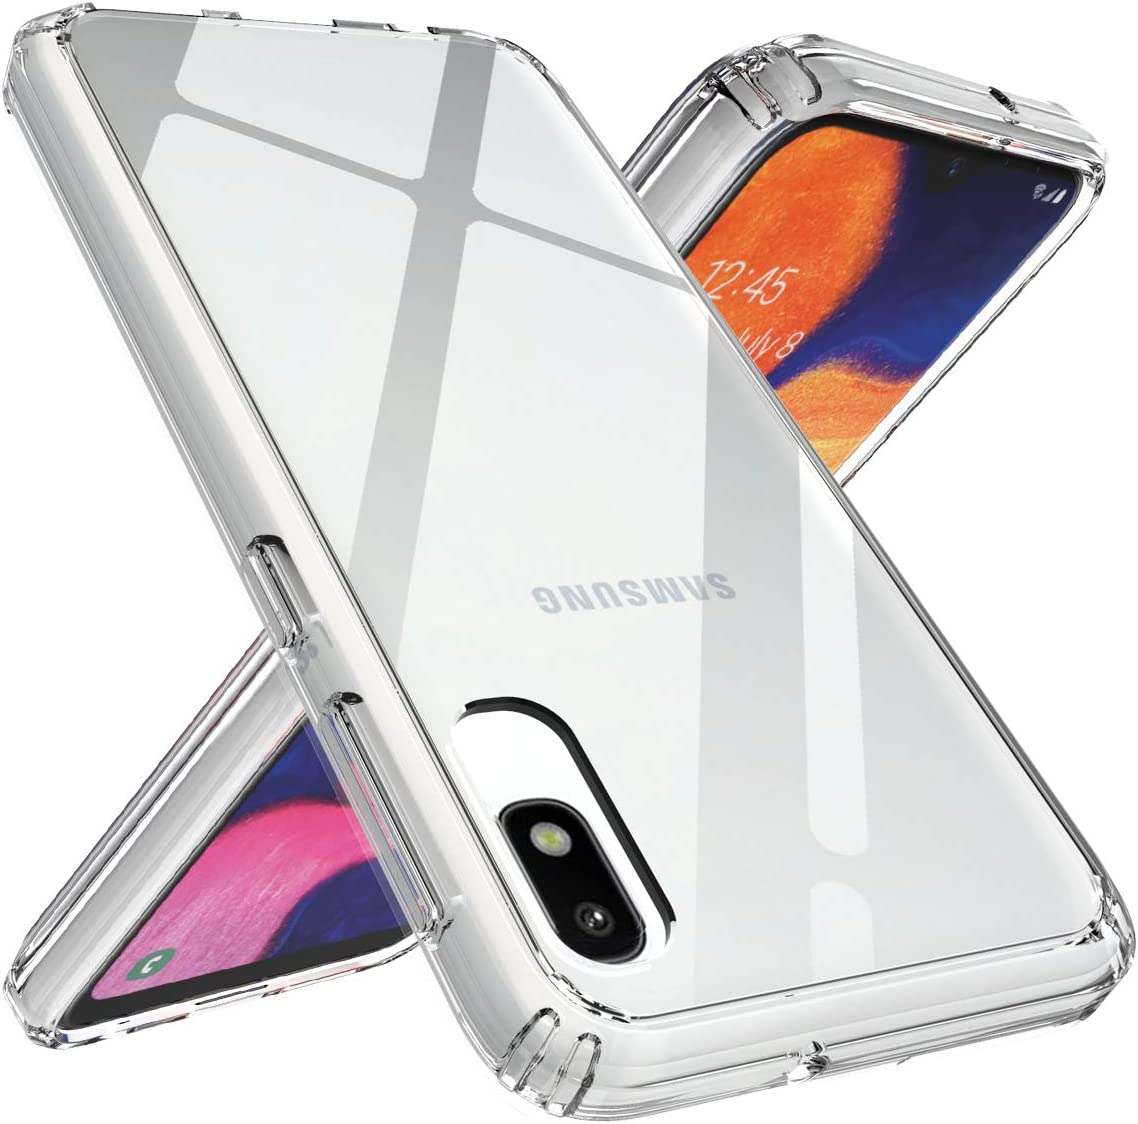 TalkingCase Clear TPU Phone Case for Samsung Galaxy A10E,SM-A102U,Dairy Cow Fur Print,Light Weight,Flexible,Anti-Scratch,Tempered Glass Screen Protector Included,Designed in USA